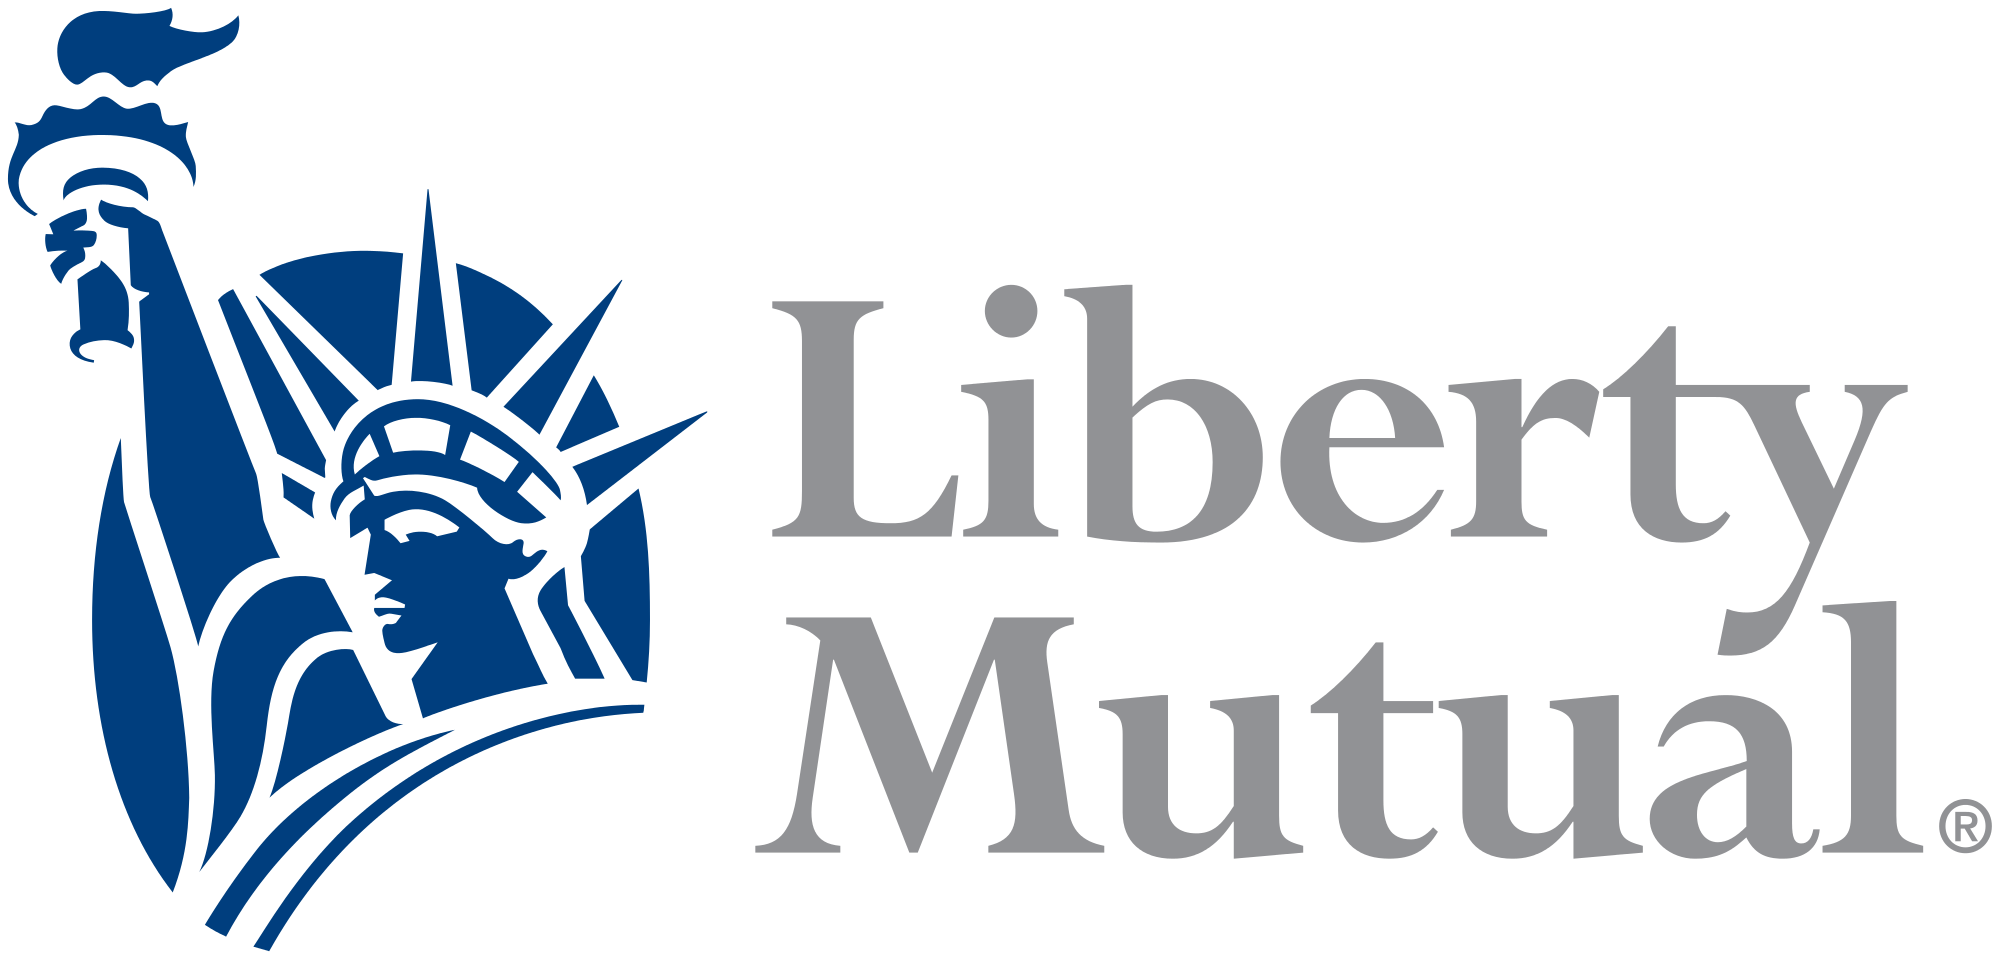 Liberty Mutual Quote Stunning Liberty Mutual Insurance Logos  Google Search  Insurance . Inspiration